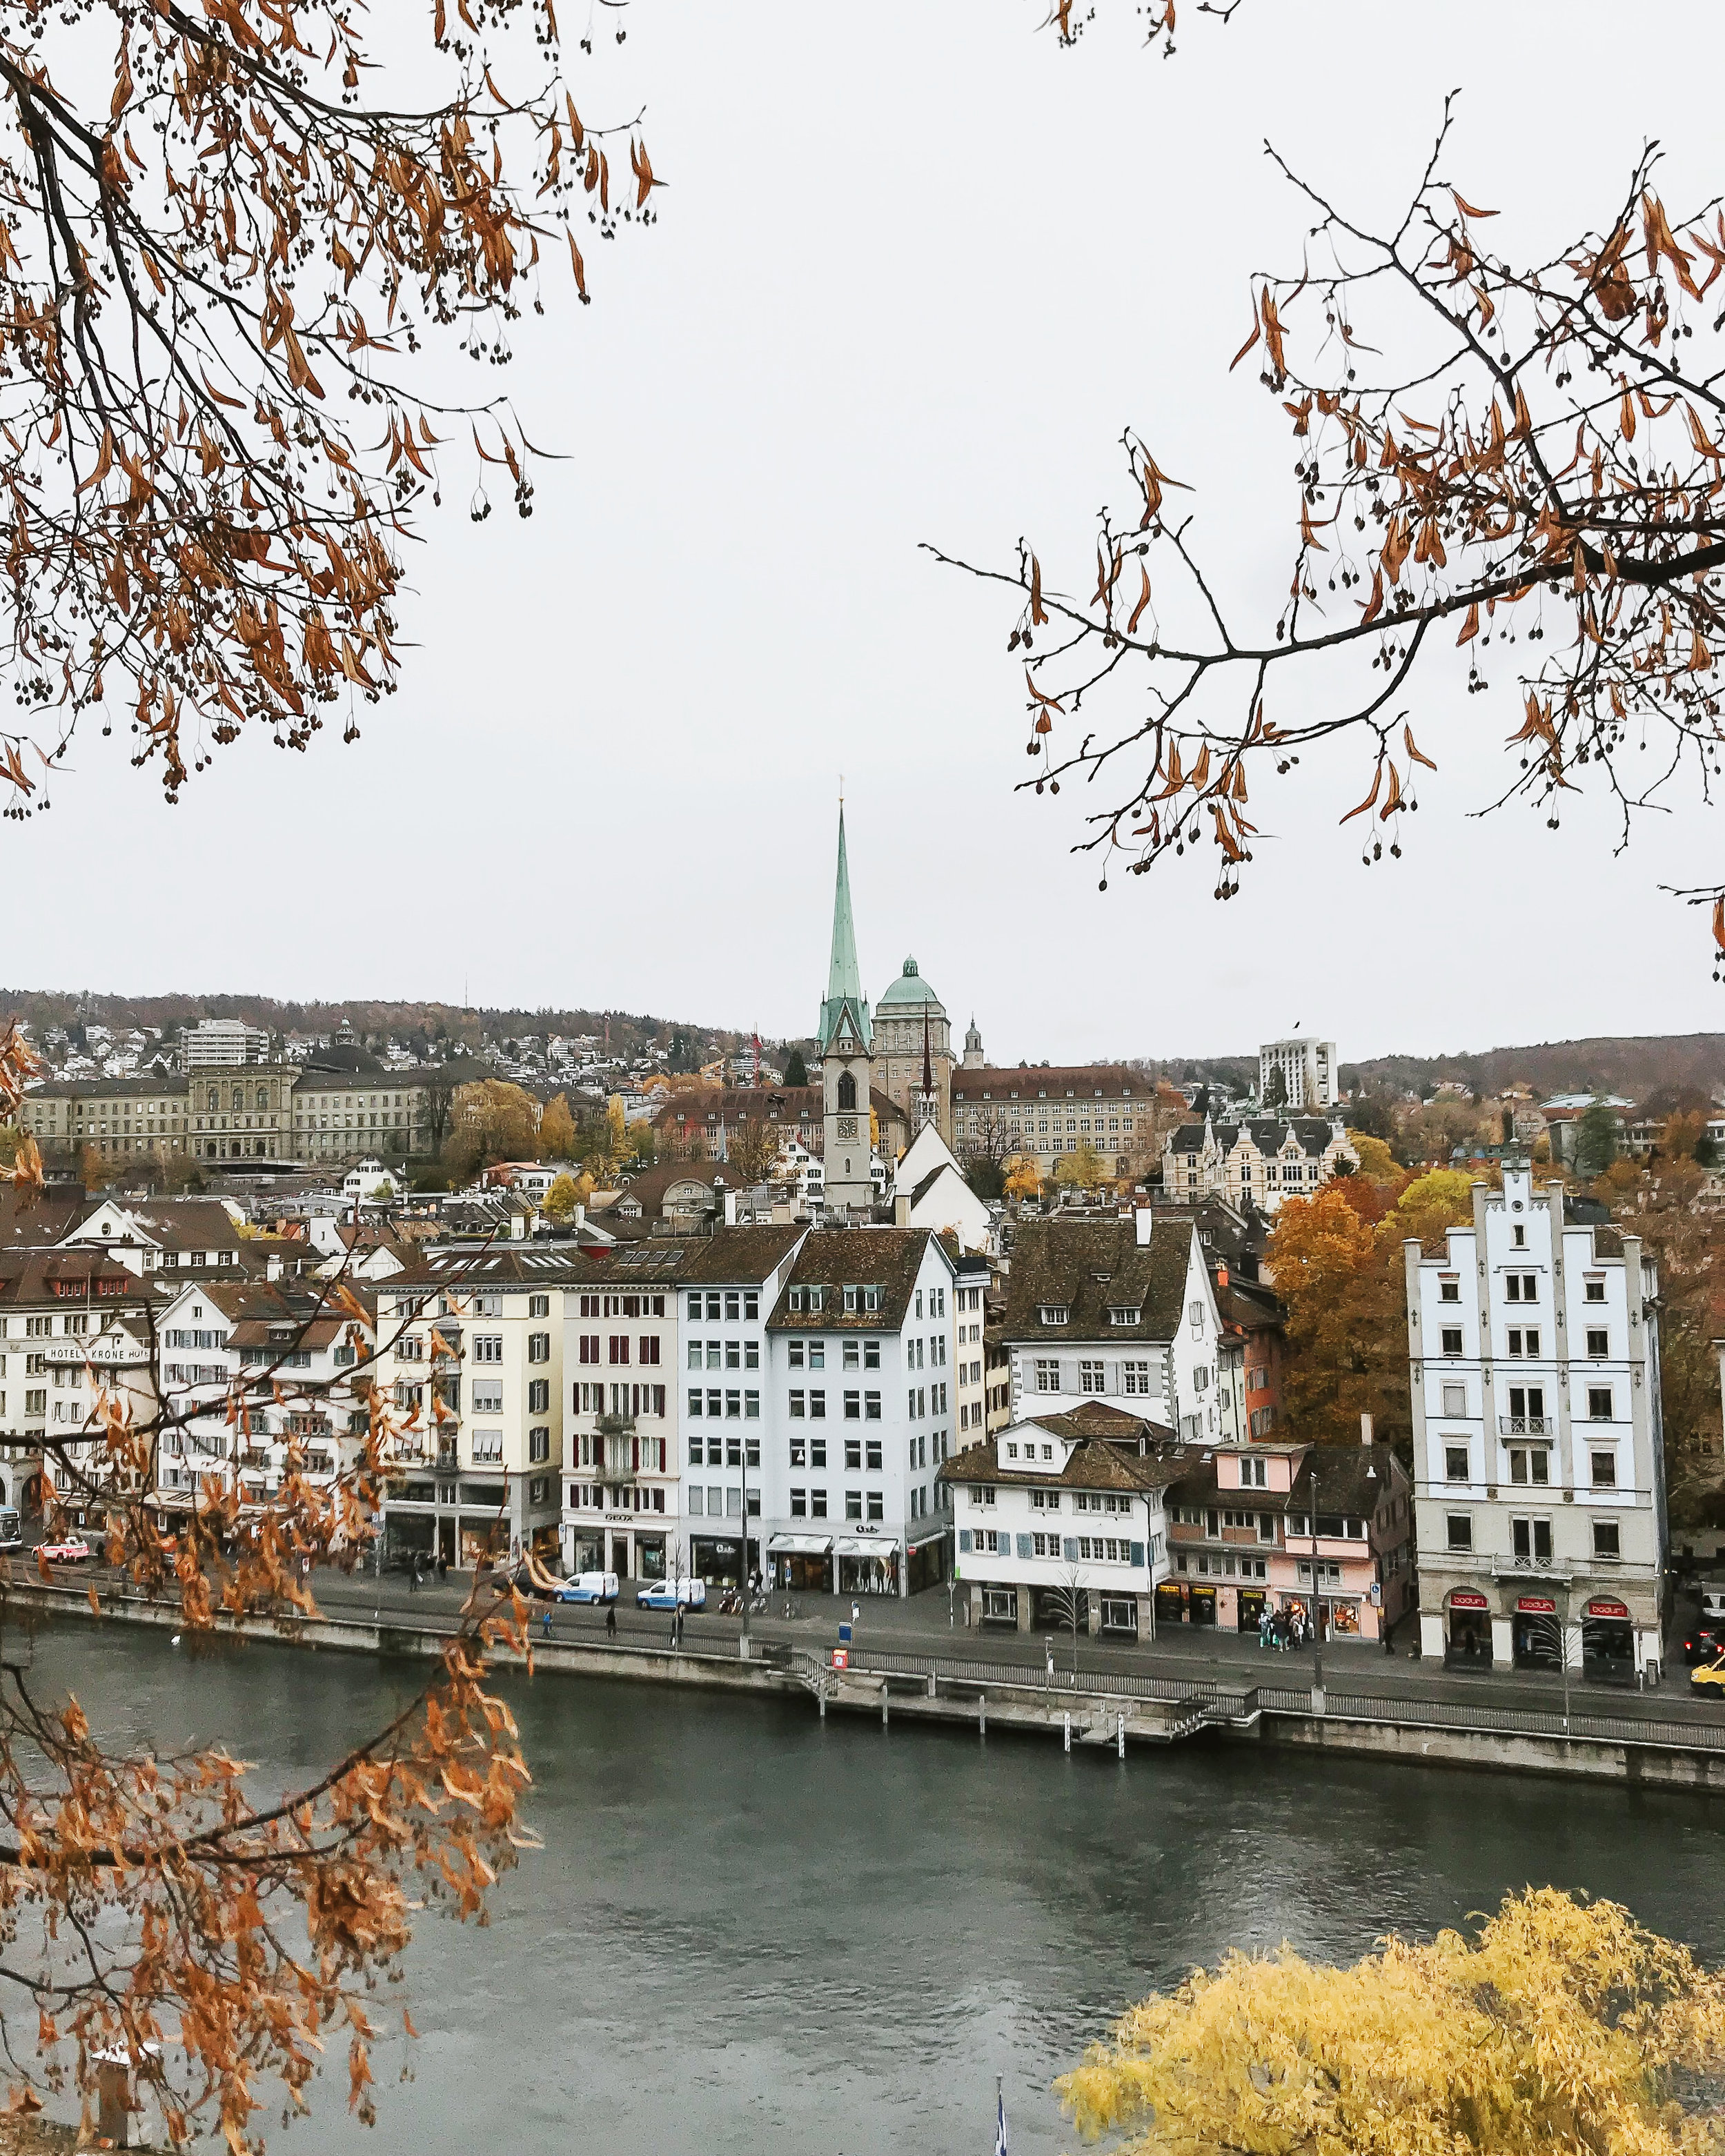 The view from Lindenhof